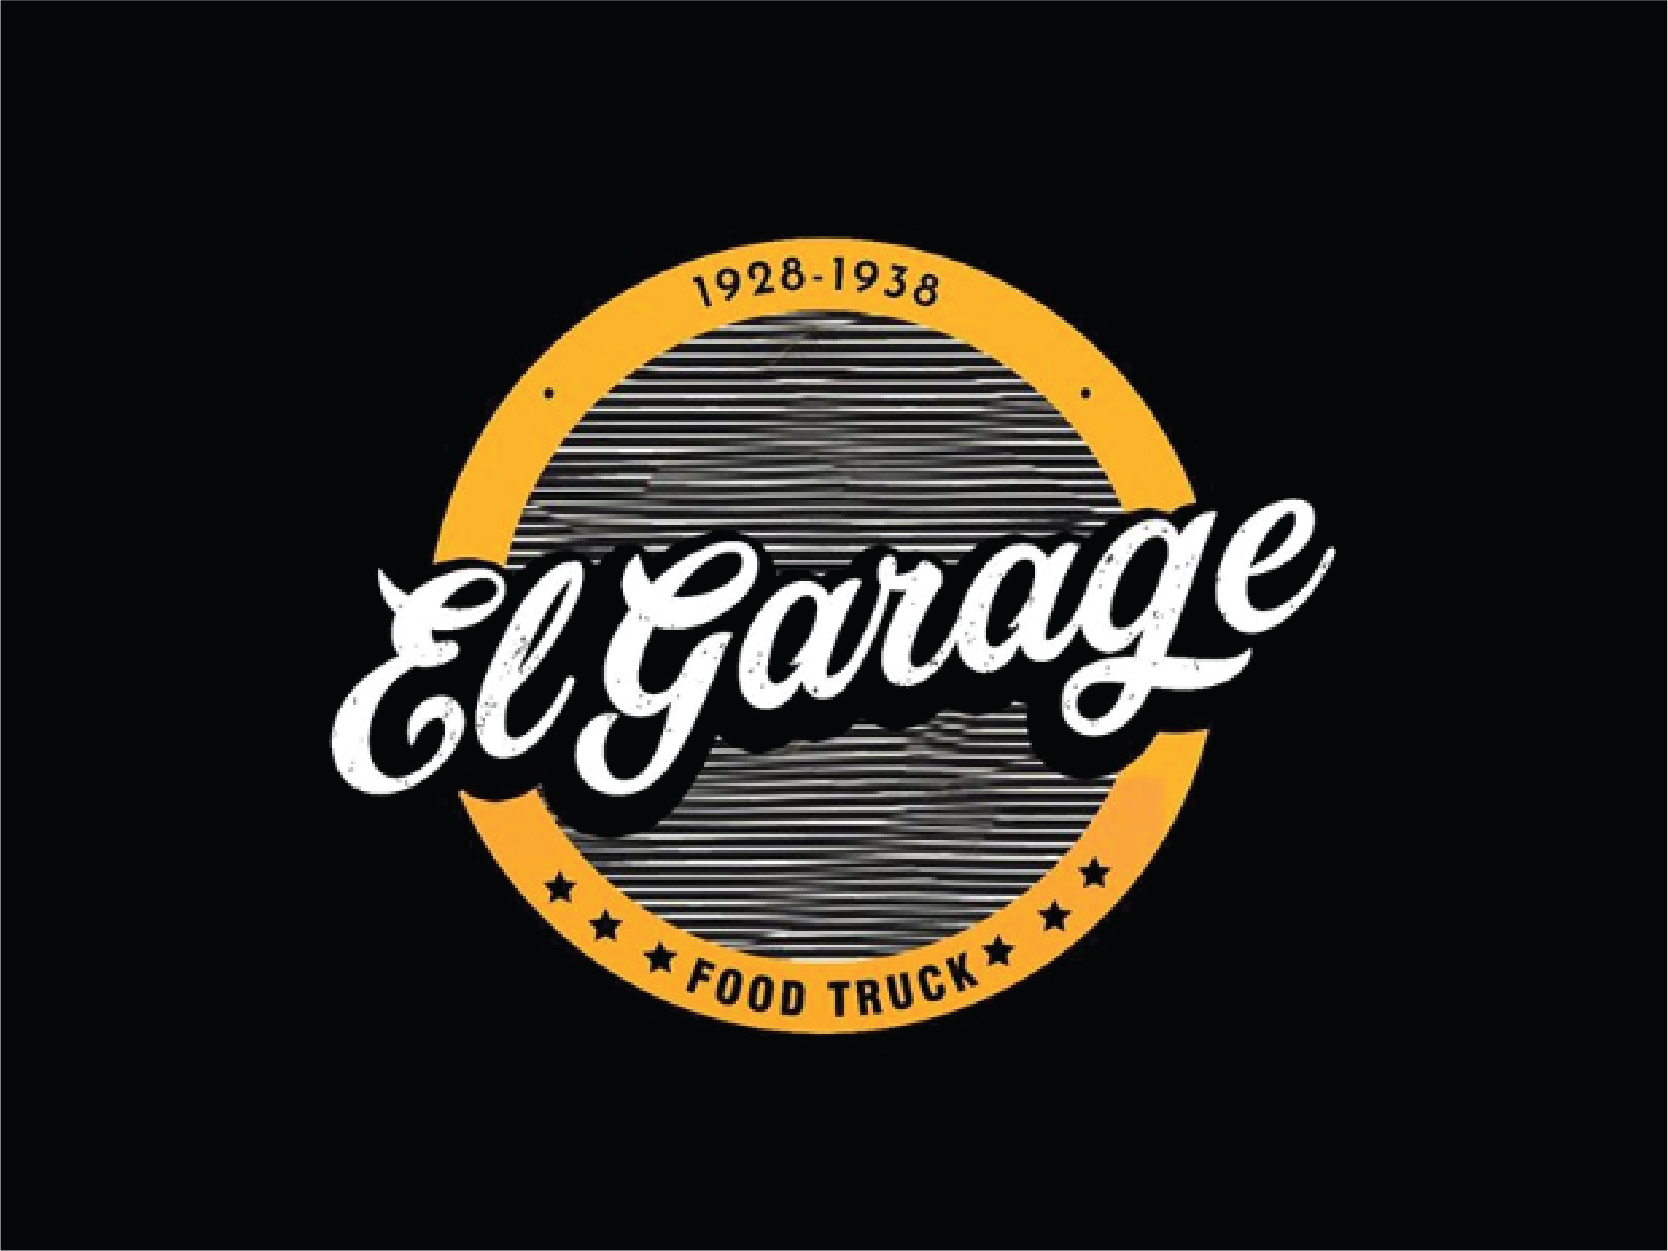 EL GARAGE RESTO BAR & FOOD TRUCK